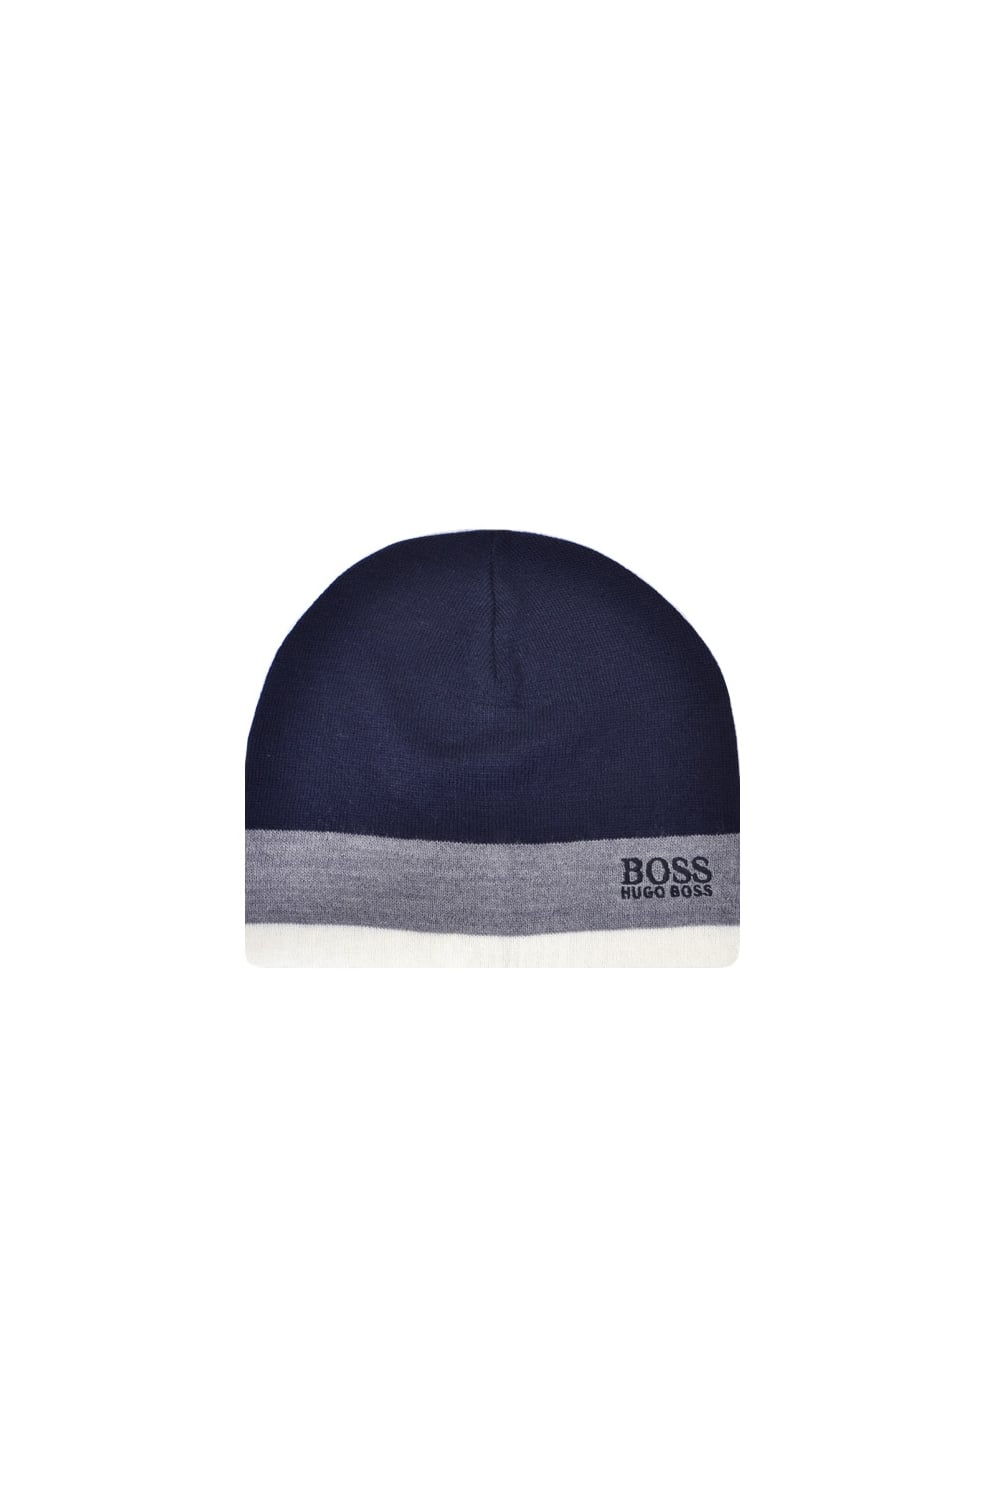 8f964a27bc6 Hugo Boss Green Ciny Beanie Hat - Accessories from Michael Stewart ...